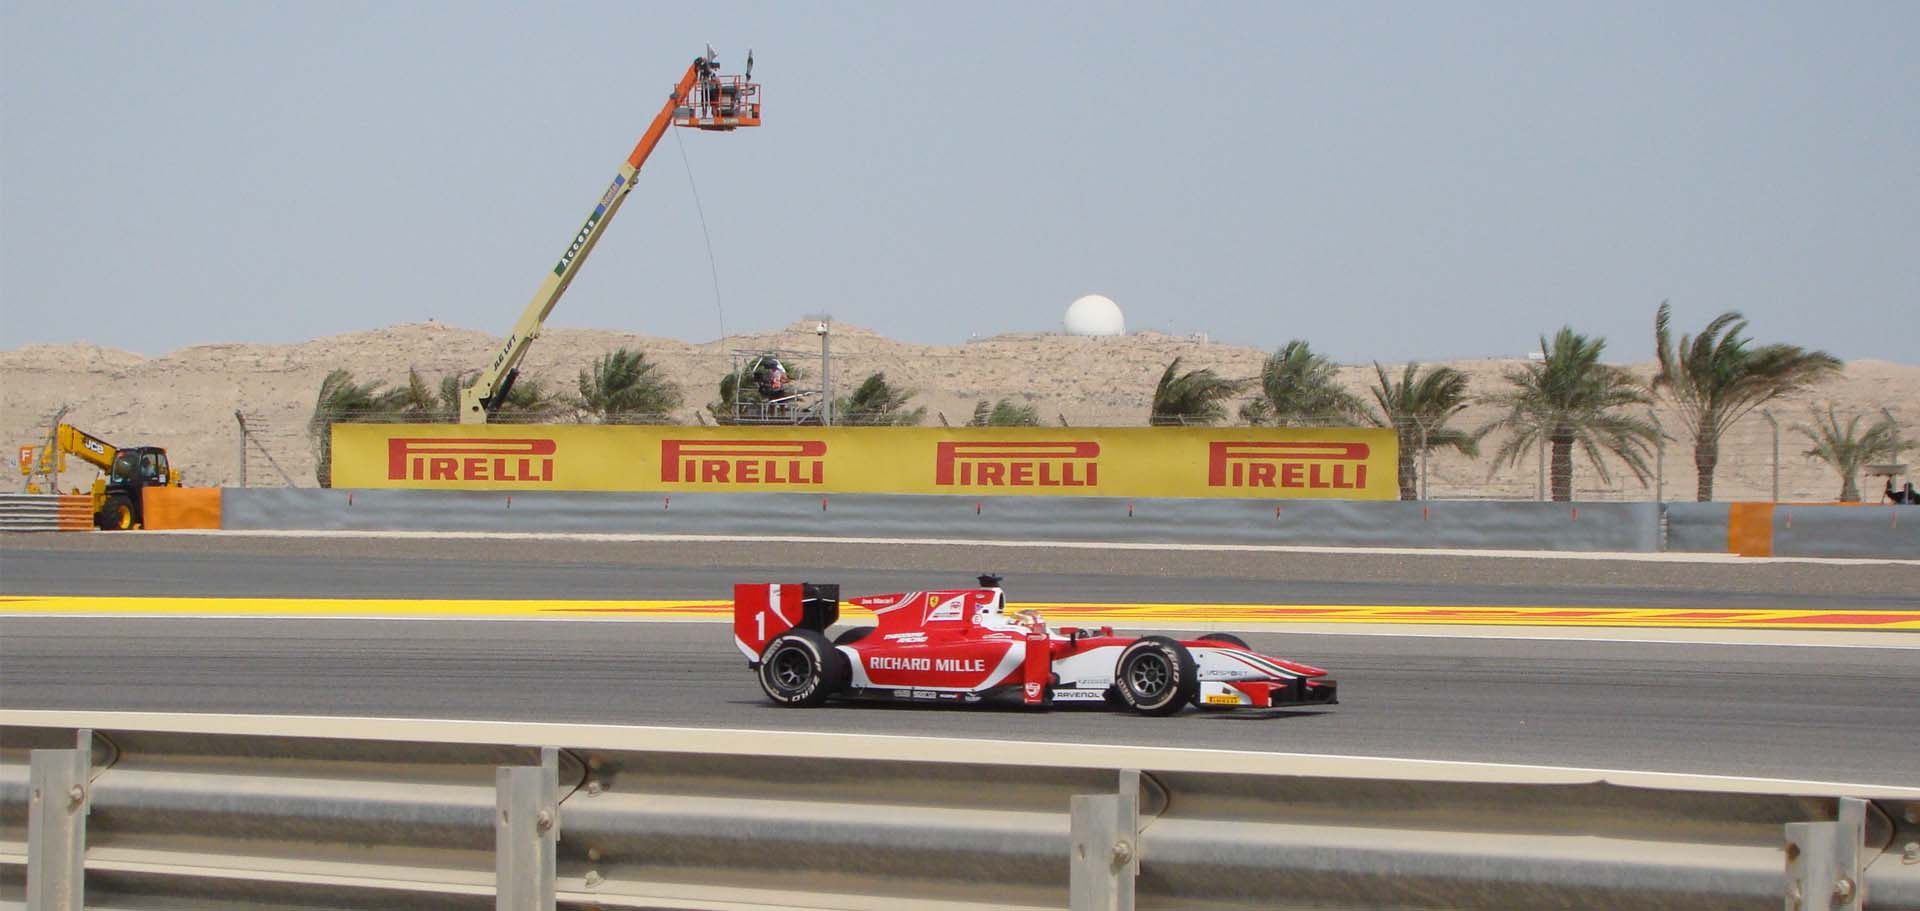 Rental Gulf MEWP over a race track